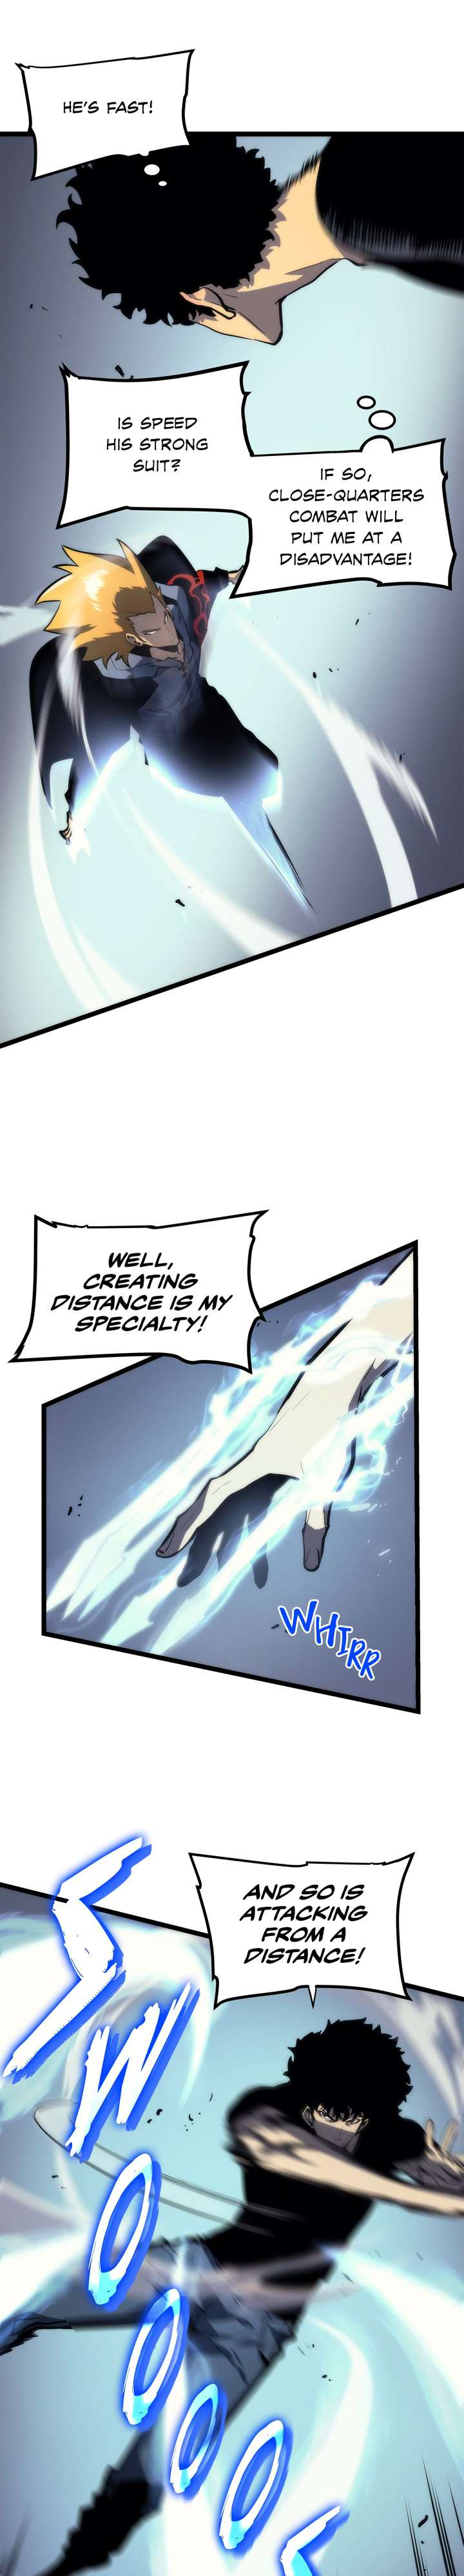 Solo Leveling Chapter 92 Page 7